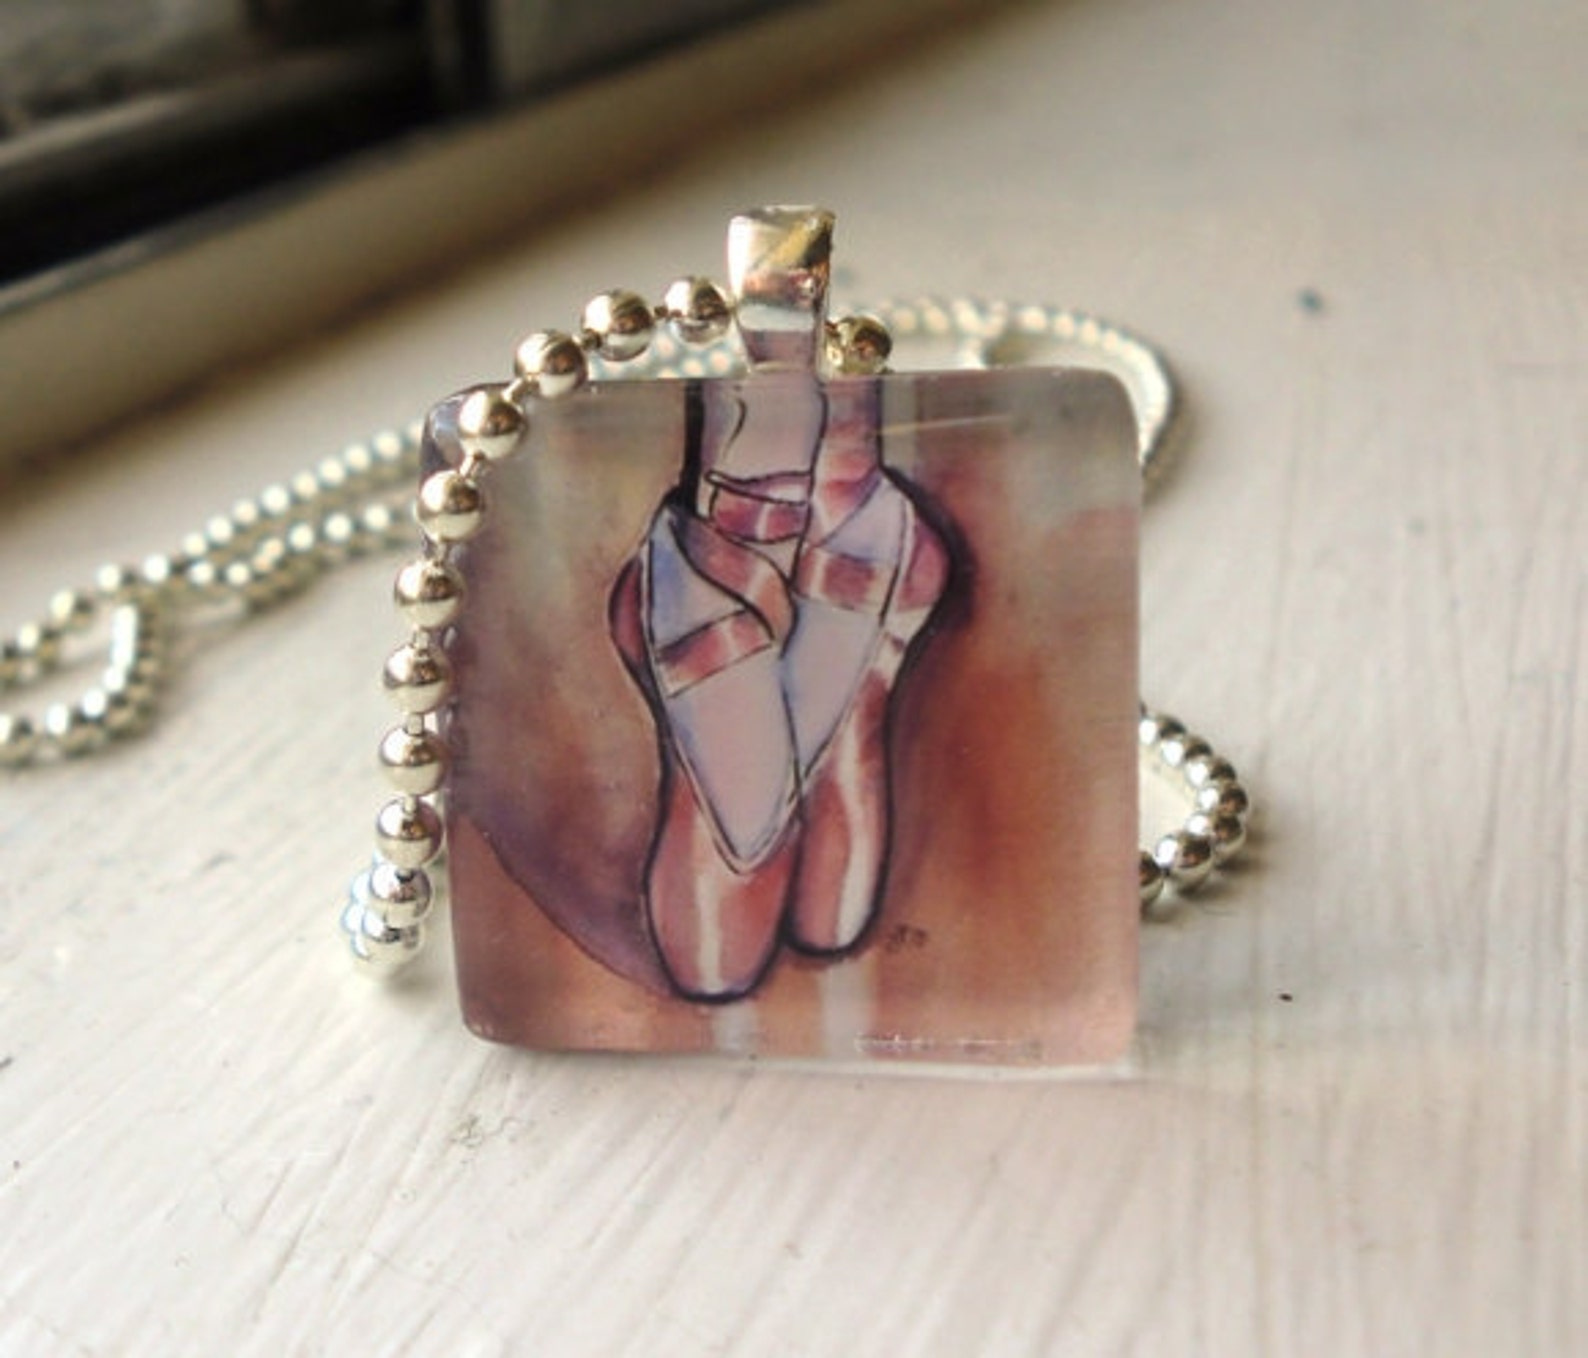 dance jewelry - pendant necklace - pink ballet shoes ballerina necklace, glass tile pendant necklace, wearable watercolor art